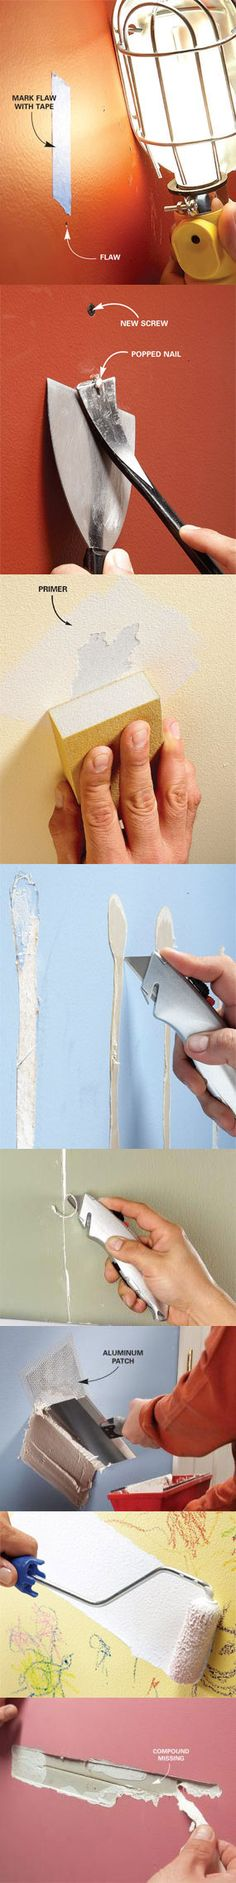 We show you how to fix common wall flaws and make them perfectly smooth before you paint. You'll save the expense of hiring a pro by doing the work yourself. Learn how to get perfectly smooth walls before you paint at http://www.familyhandyman.com/DIY-Projects/Wall---Ceiling/Wall-Repair/preparing-walls-for-painting-problem-walls/View-All